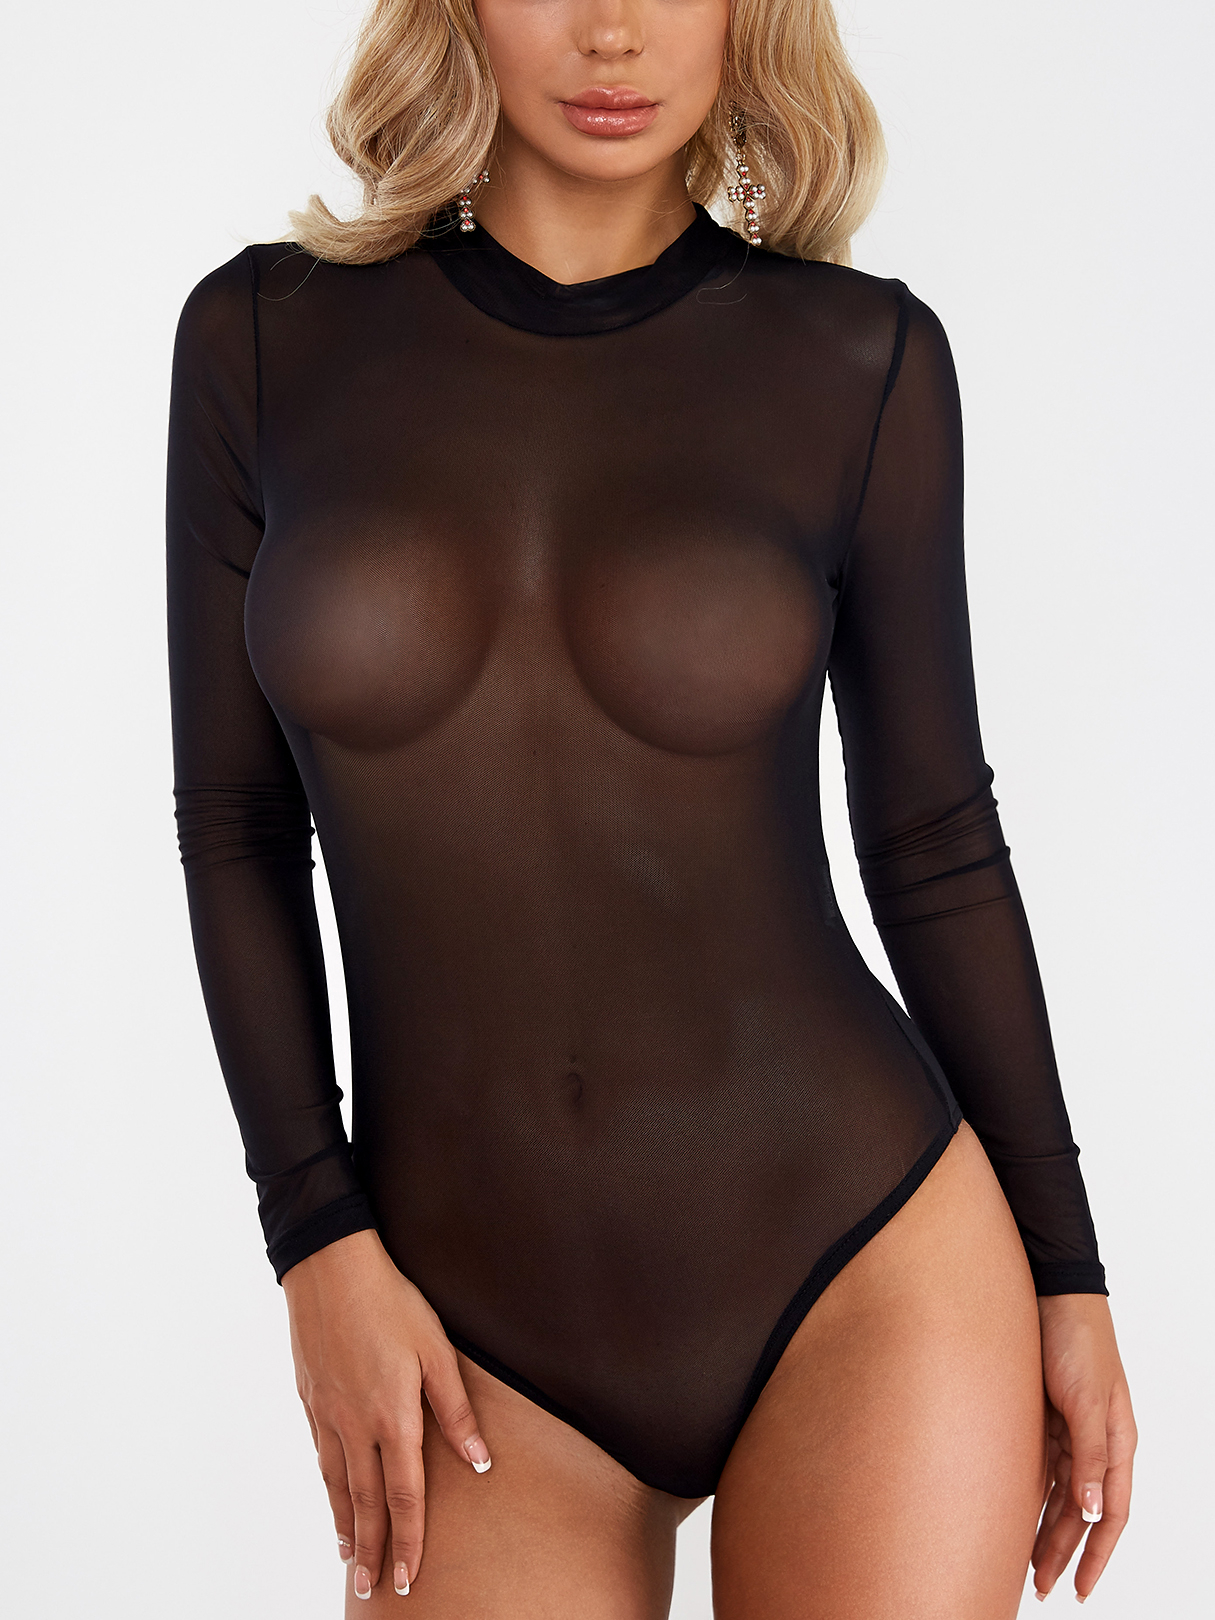 Black Net Yarn Perkins Collar Long Sleeves See-through Sexy Bodysuit black hollow design perkins collar sleeveless sexy jumpsuit